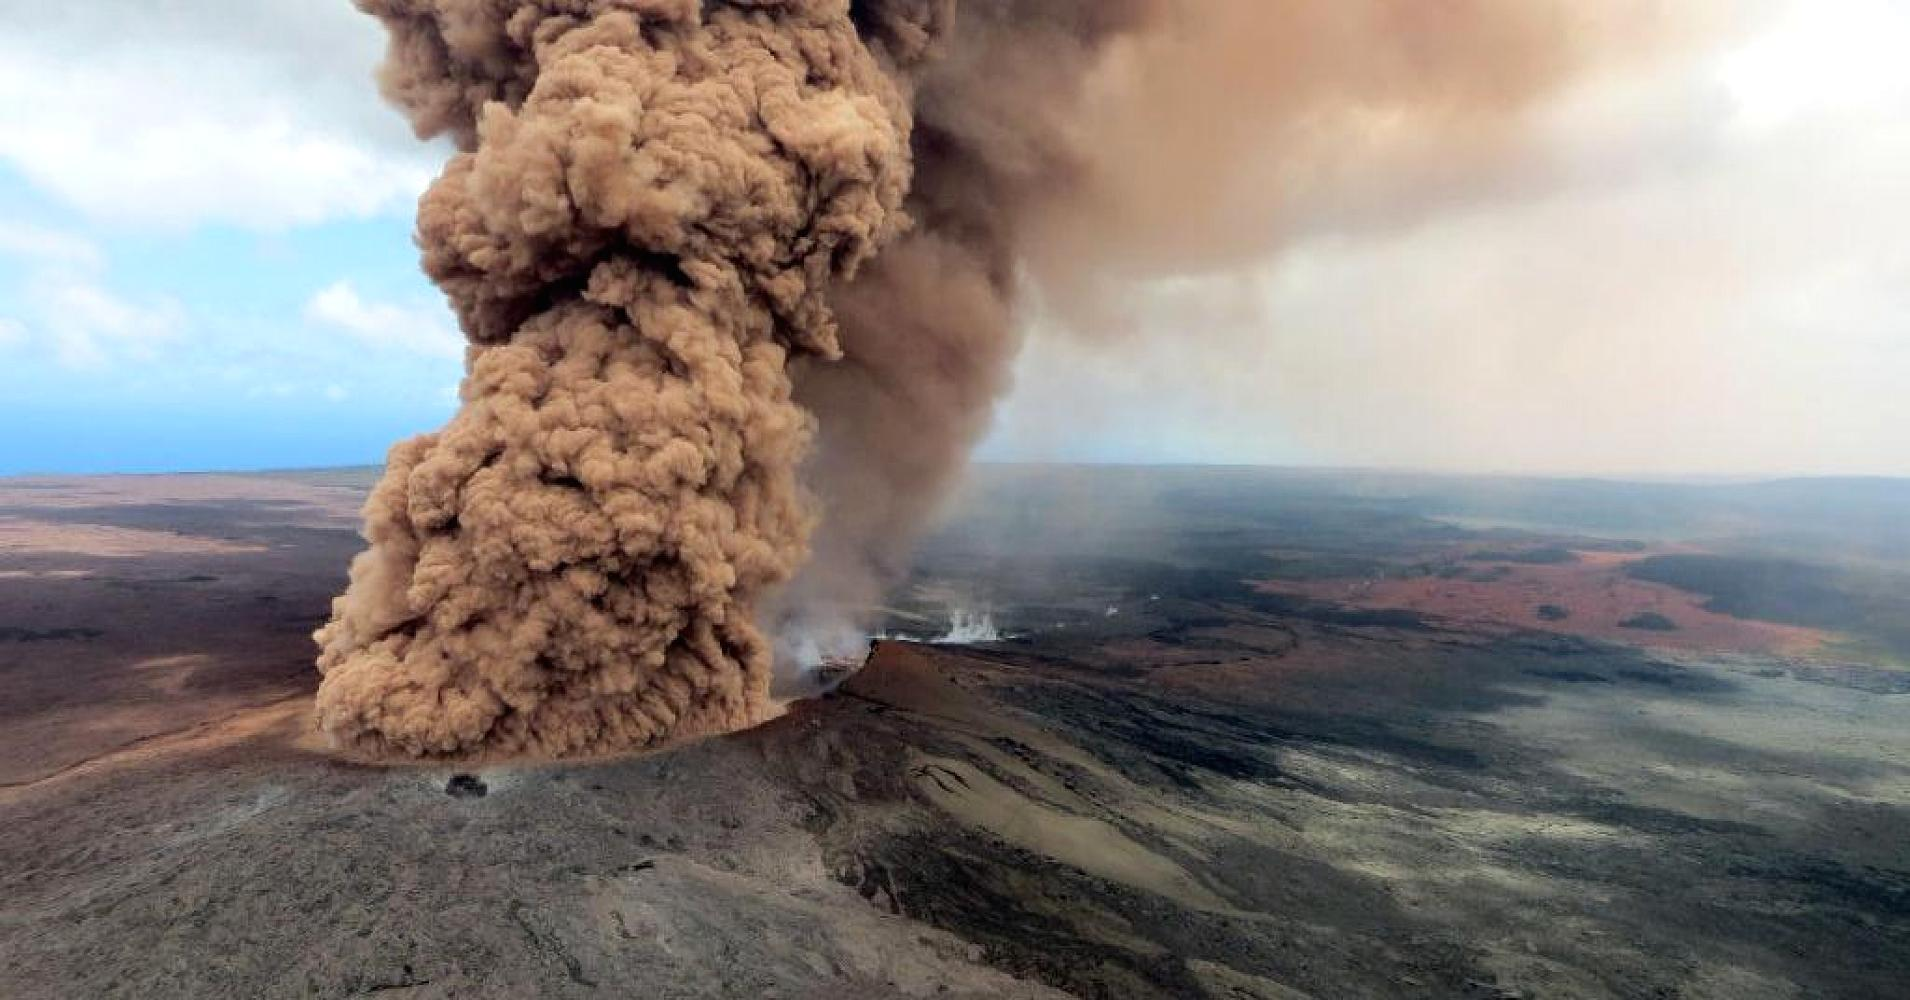 Facts About Kilauea Volcano